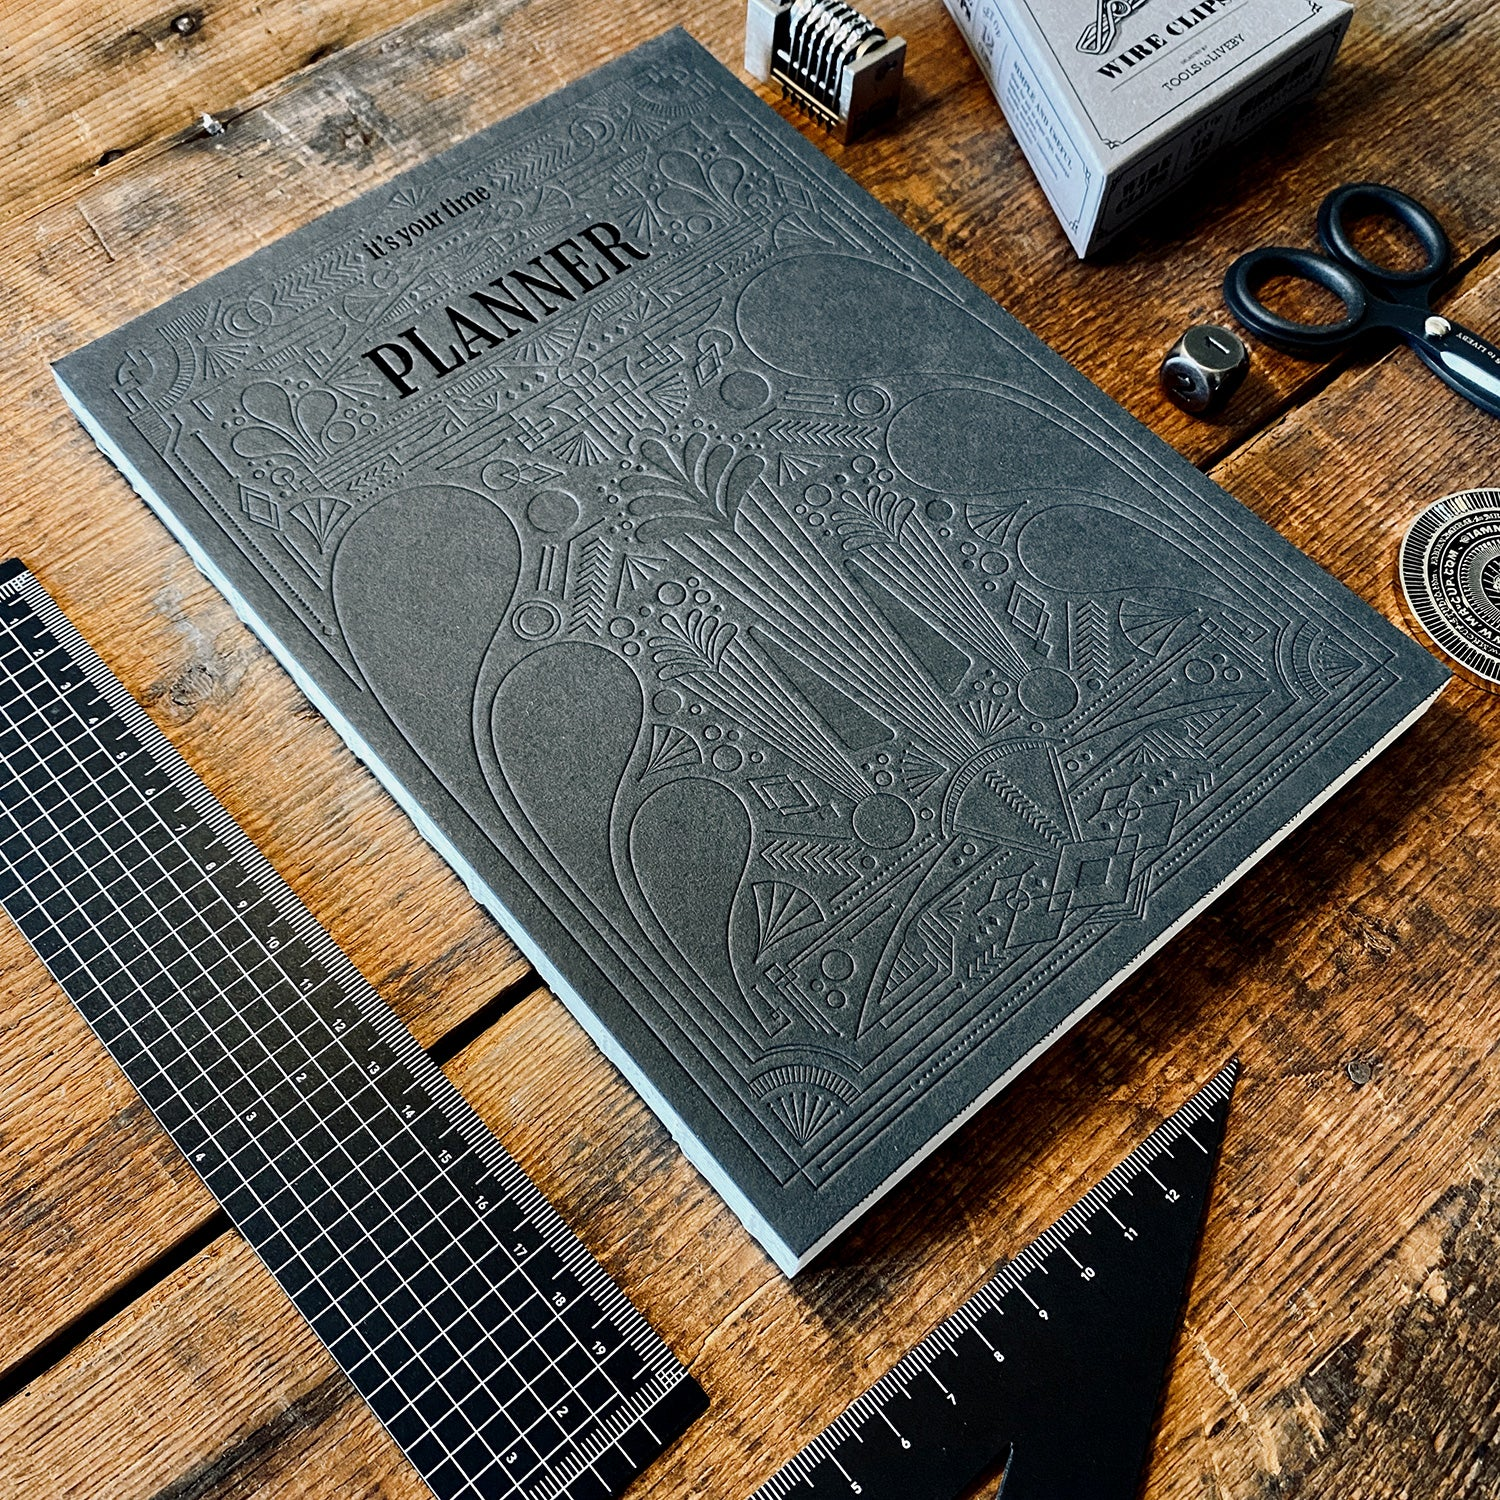 Sketchbook & Planner - Dark edition